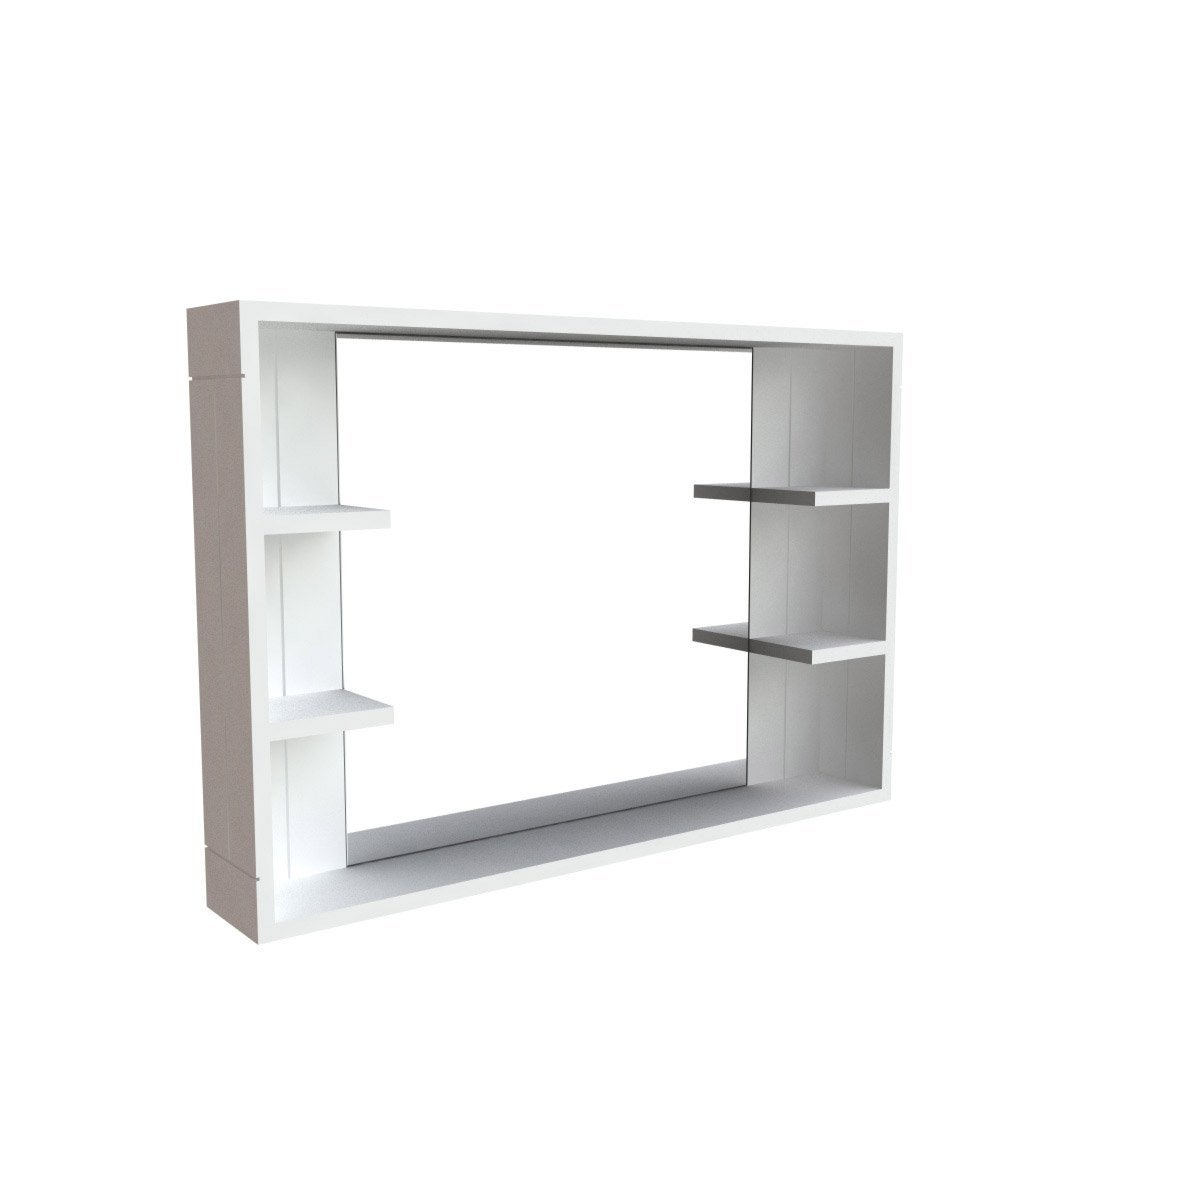 Miroir avec tablettes long island leroy merlin for Miroir decoratif leroy merlin